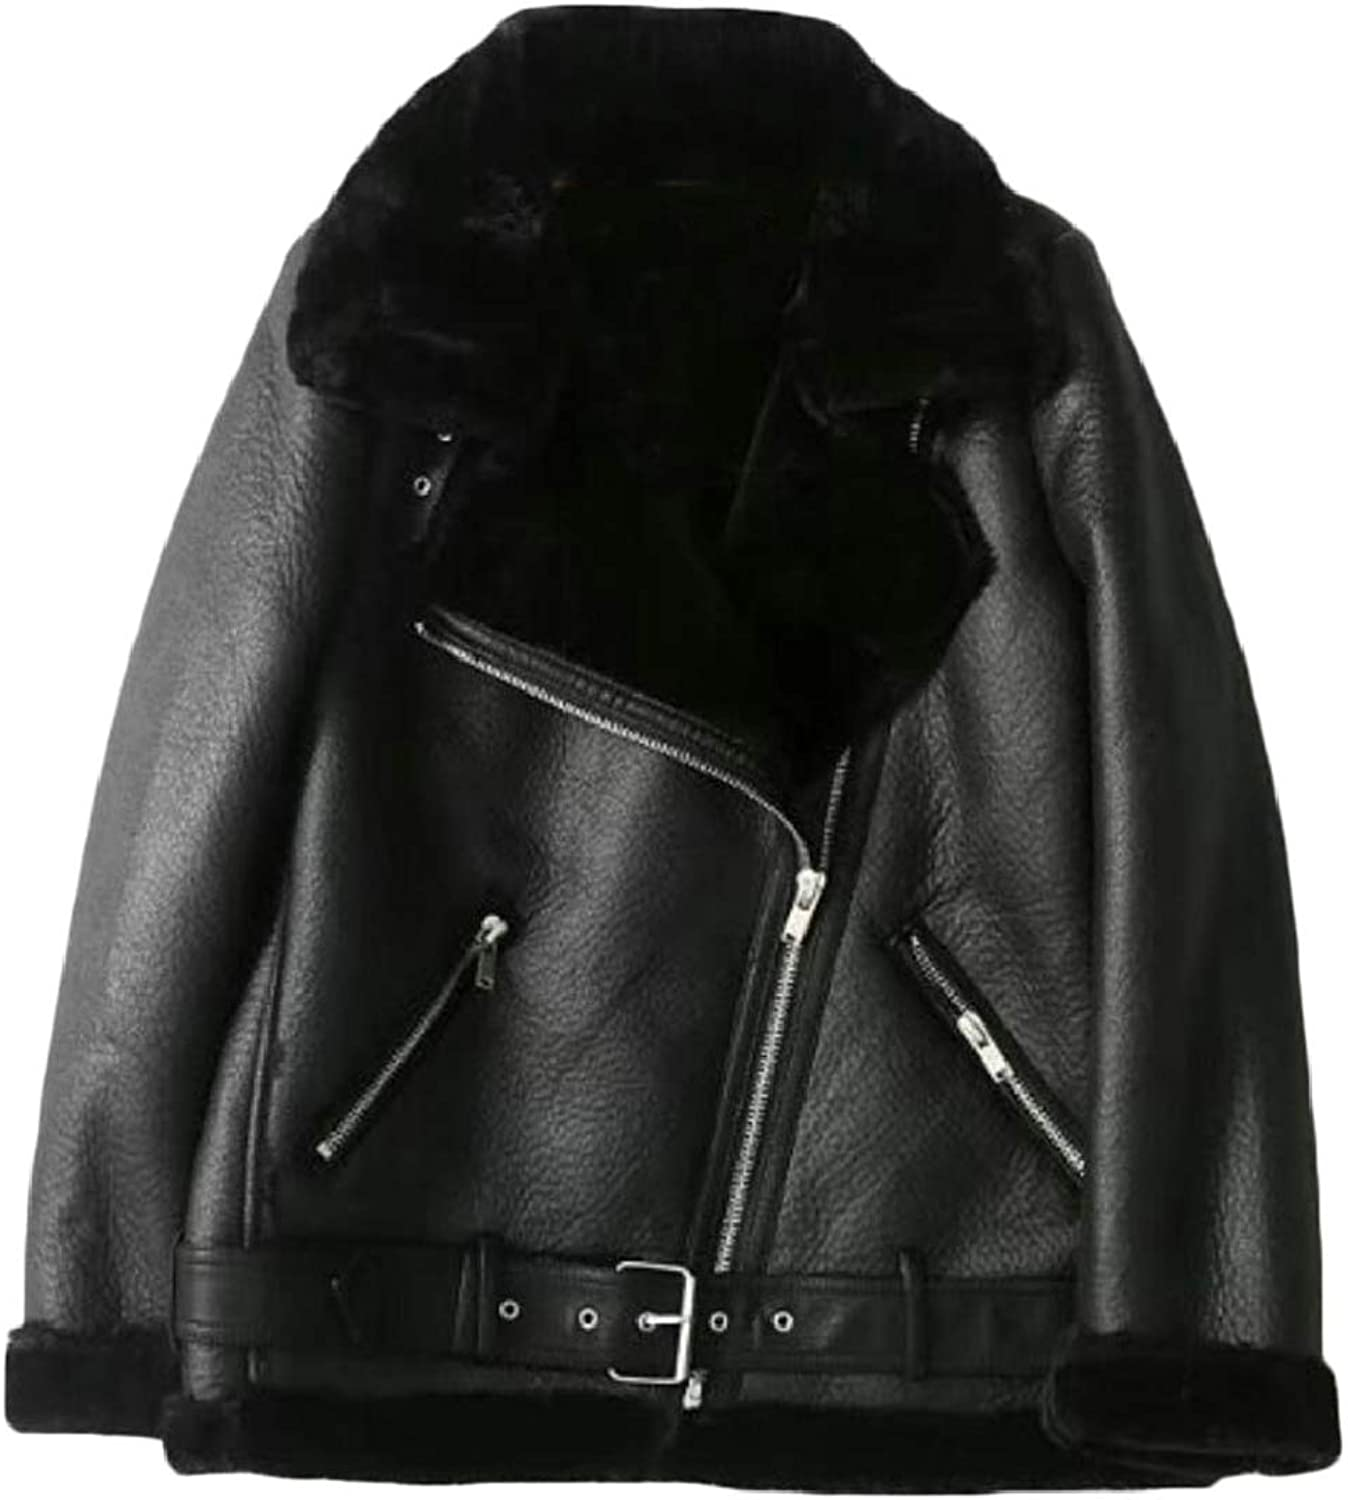 LKCENCA Womens FauxLeather Trucker Faux Fur Lined Outdoor Zipper Thicken Jackets